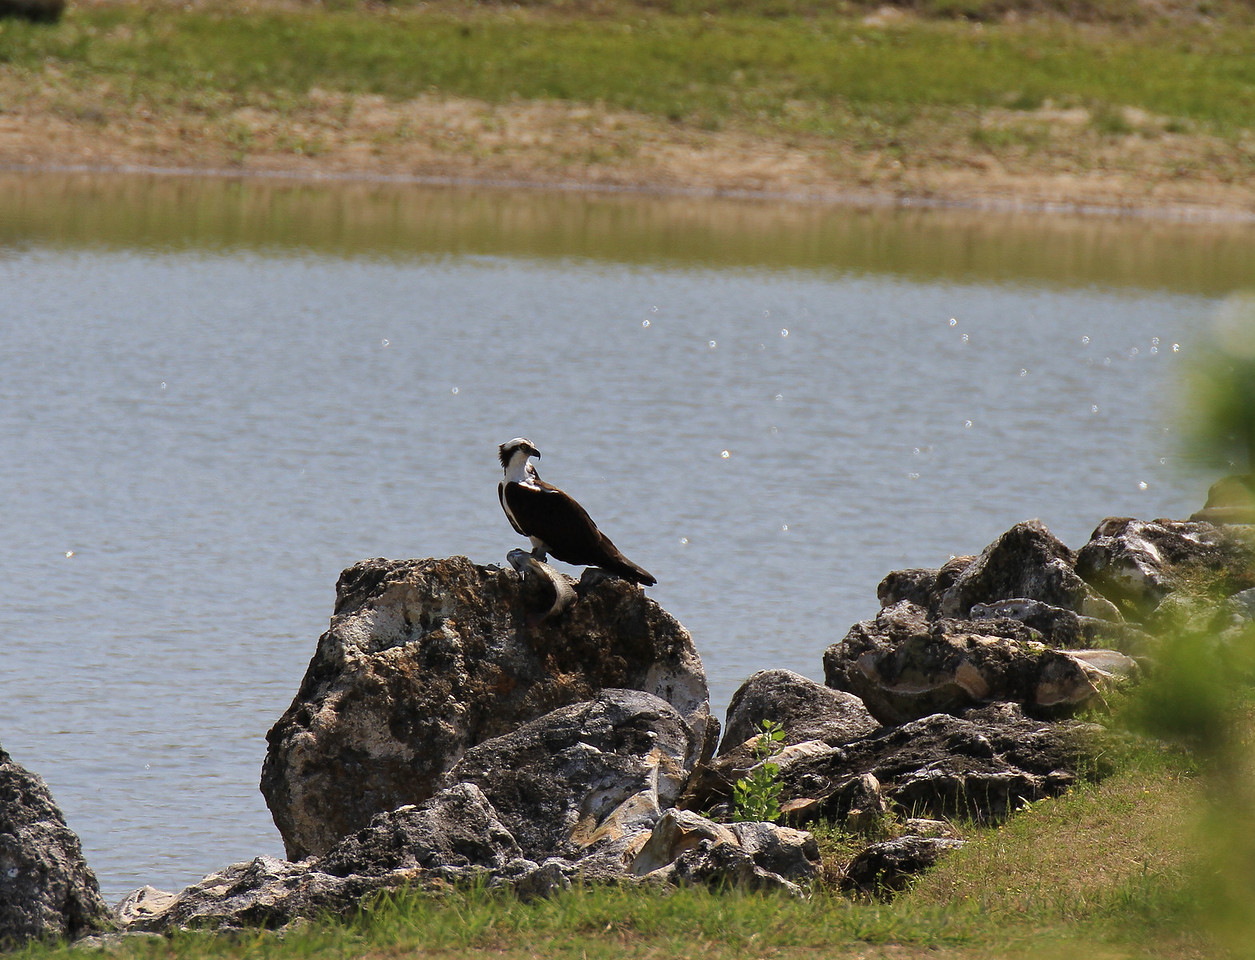 Osprey with lunch on the rock.